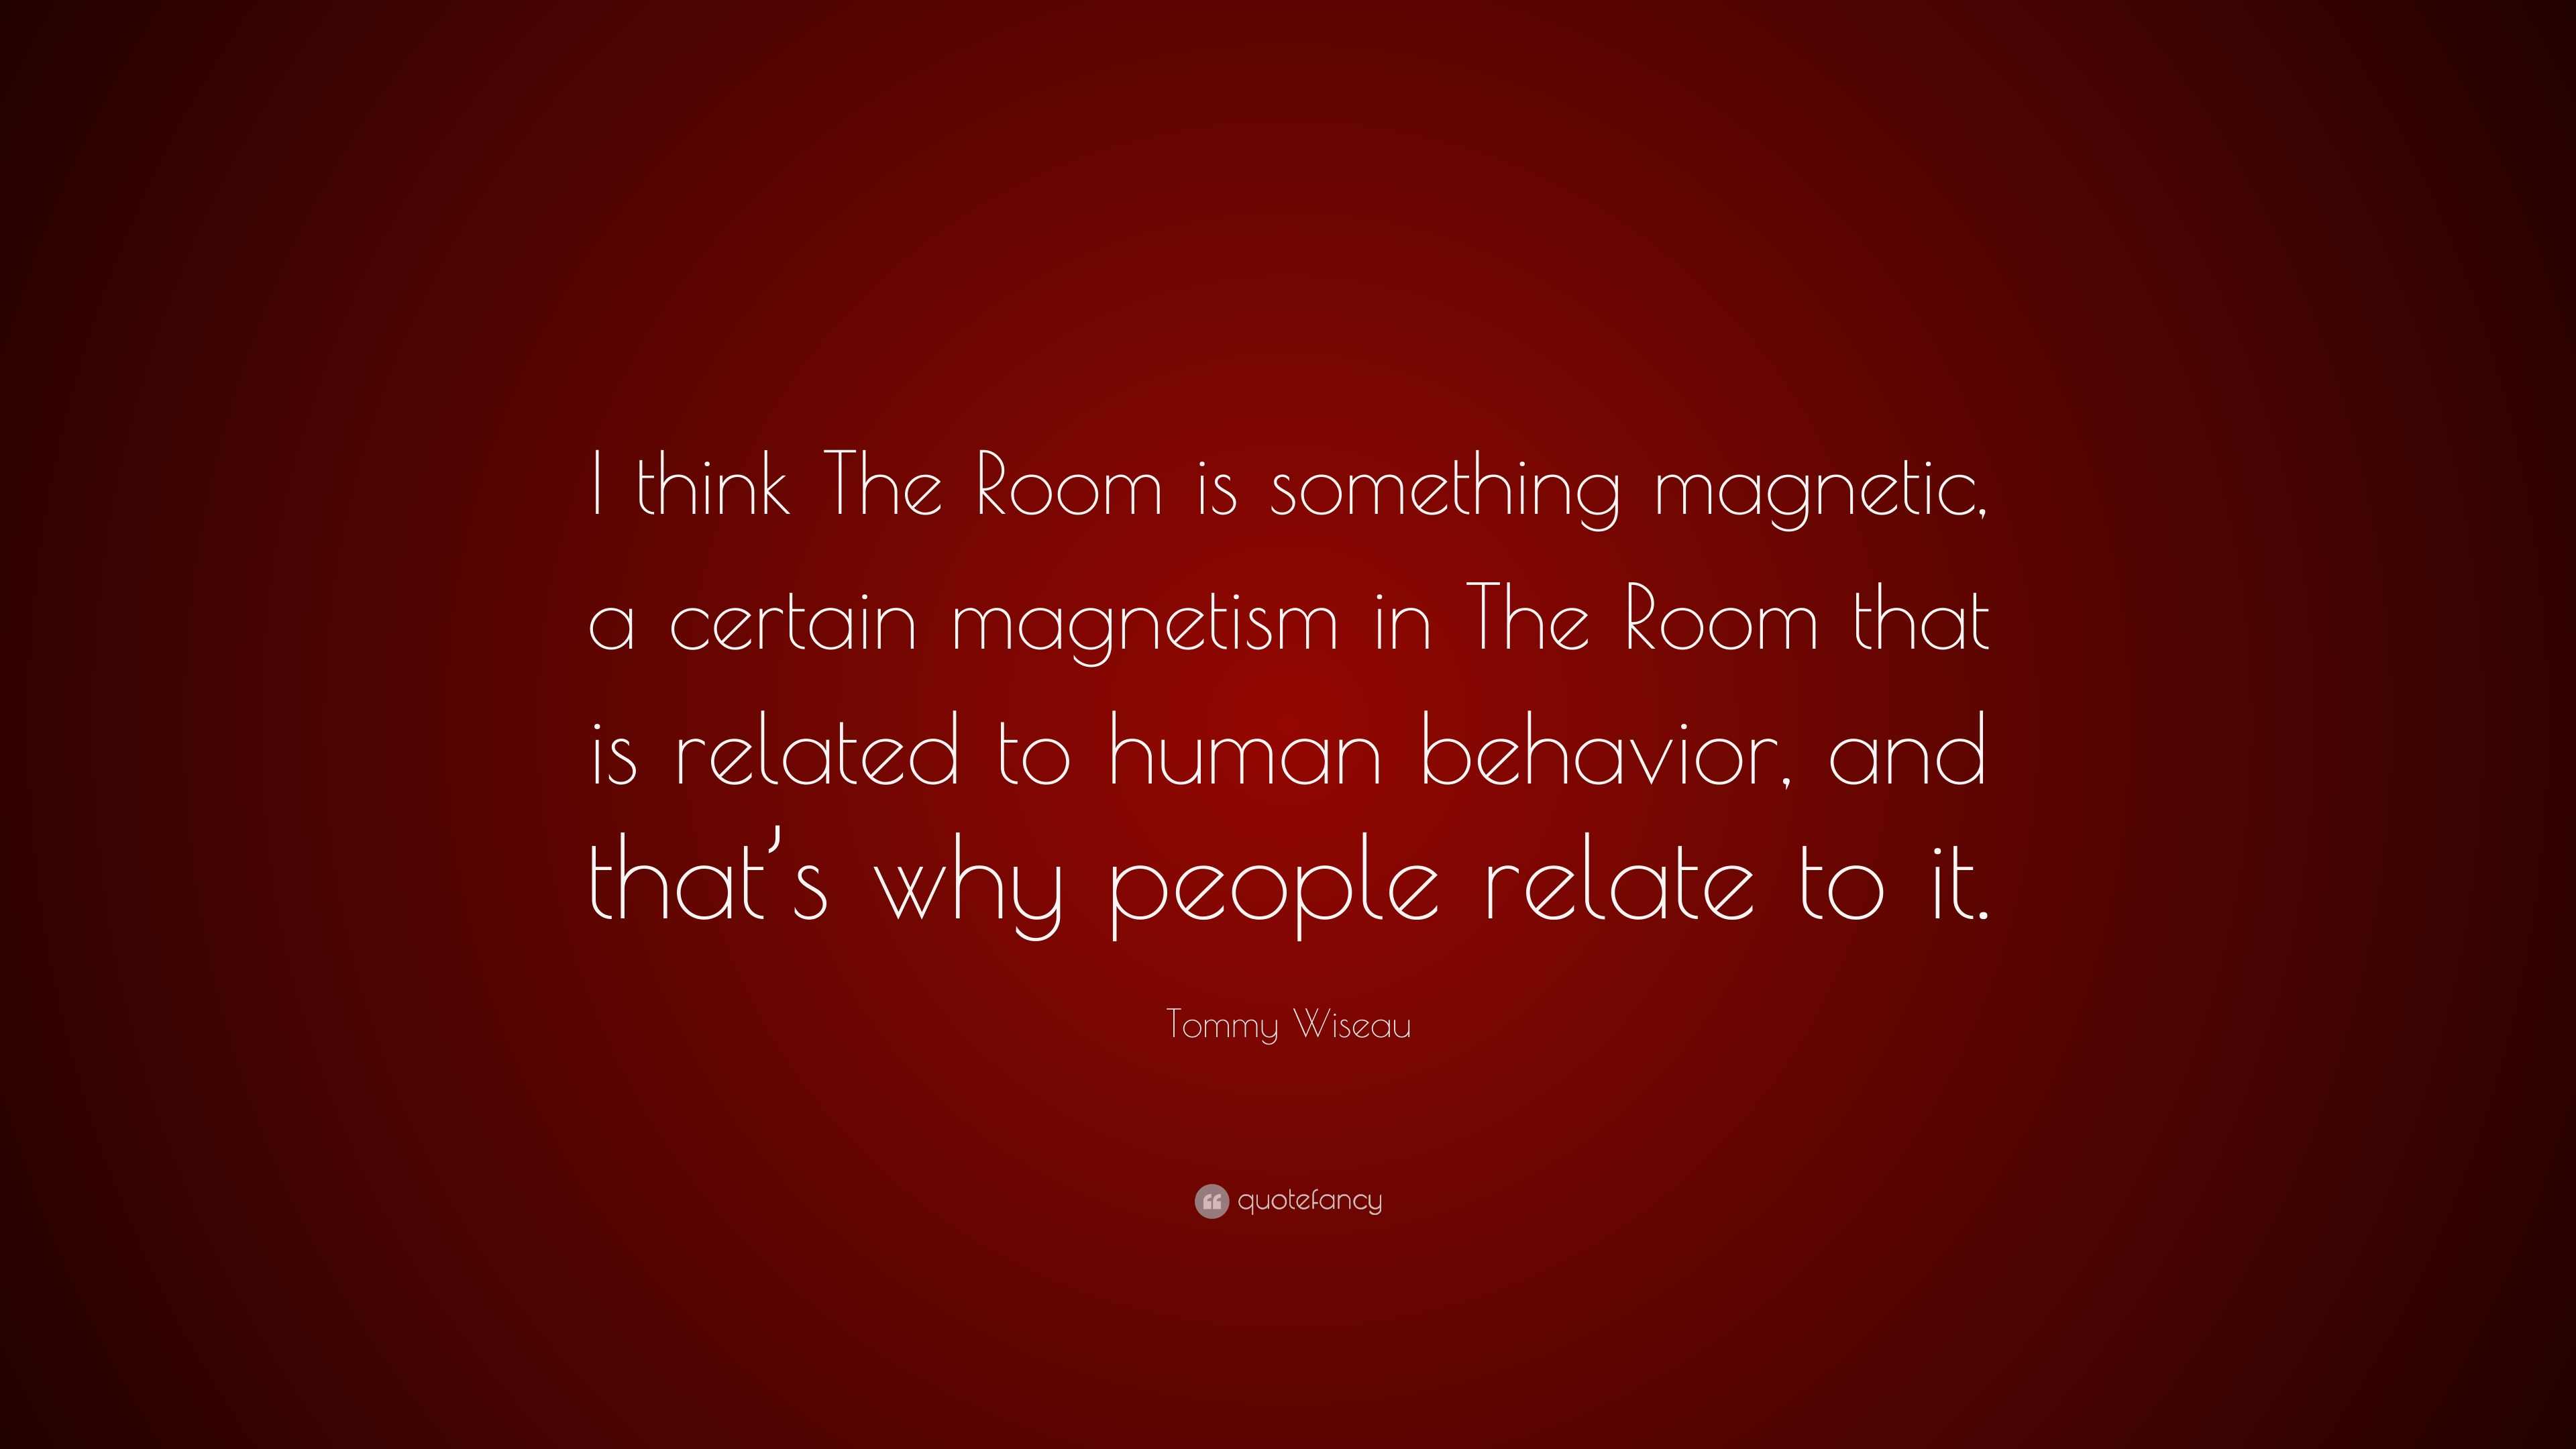 The Room Quotes | Tommy Wiseau Quote I Think The Room Is Something Magnetic A